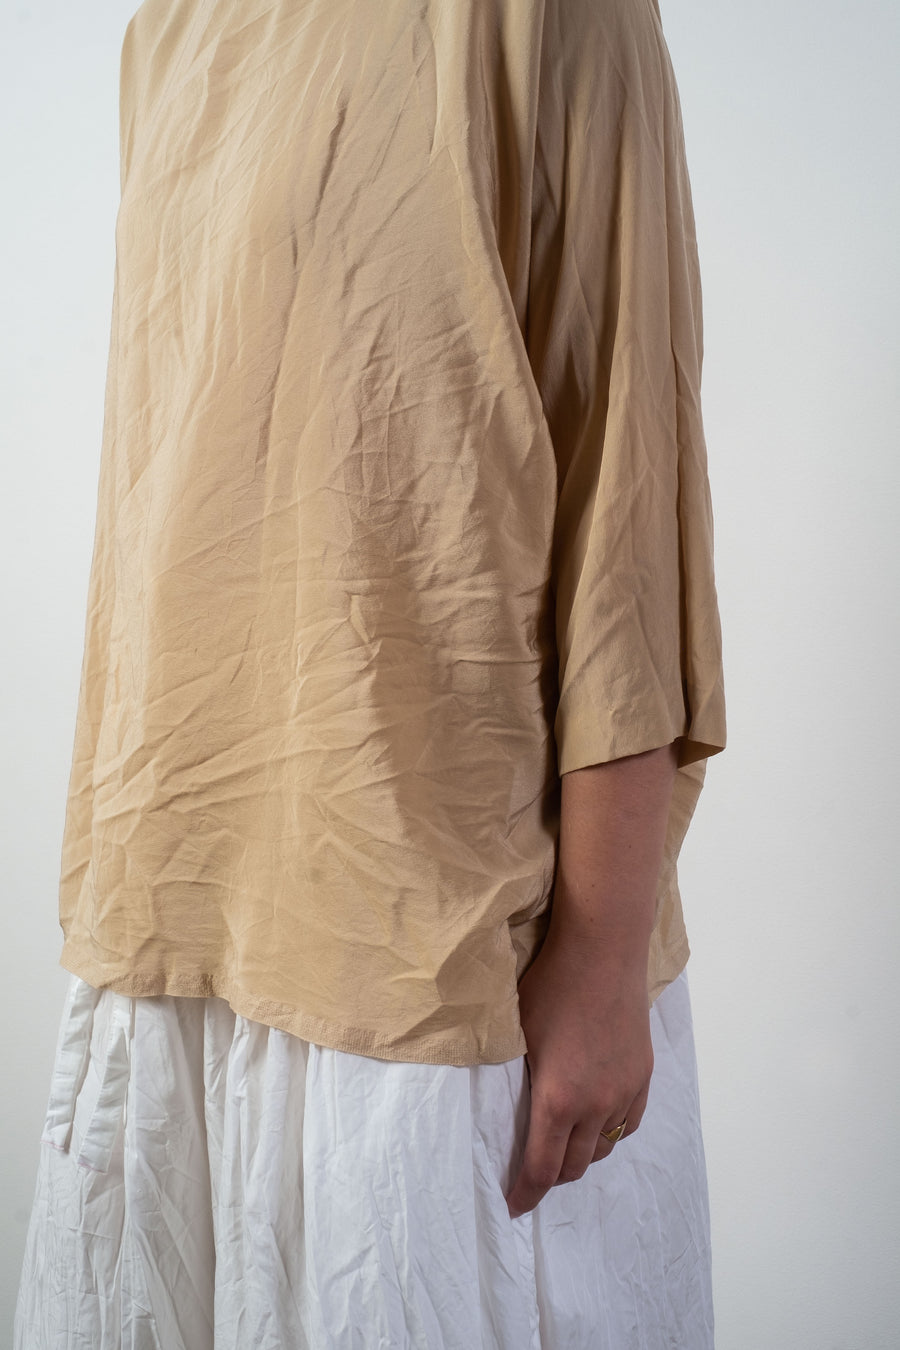 daniela gregis washed silk top noodle stories